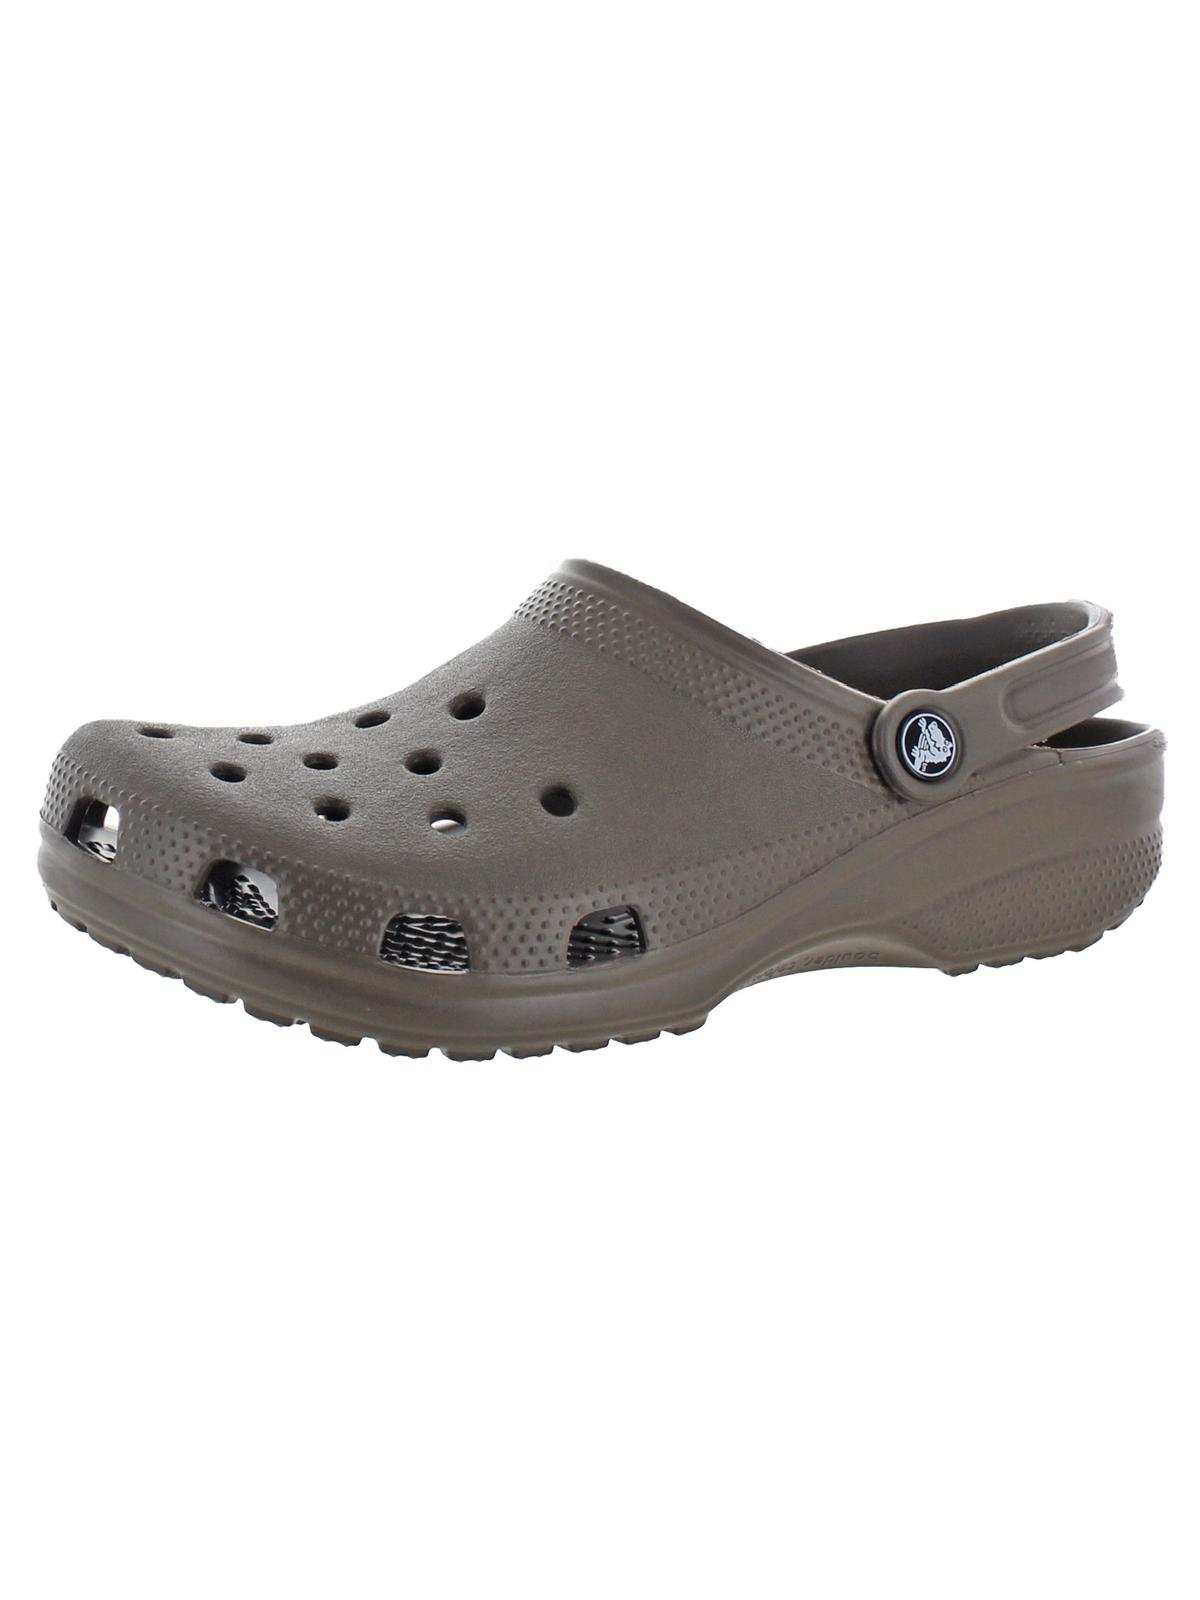 672b5d734526f7 Crocs classic croslite lightweight clogs jpg 1200x1600 Walmart crocs shoes